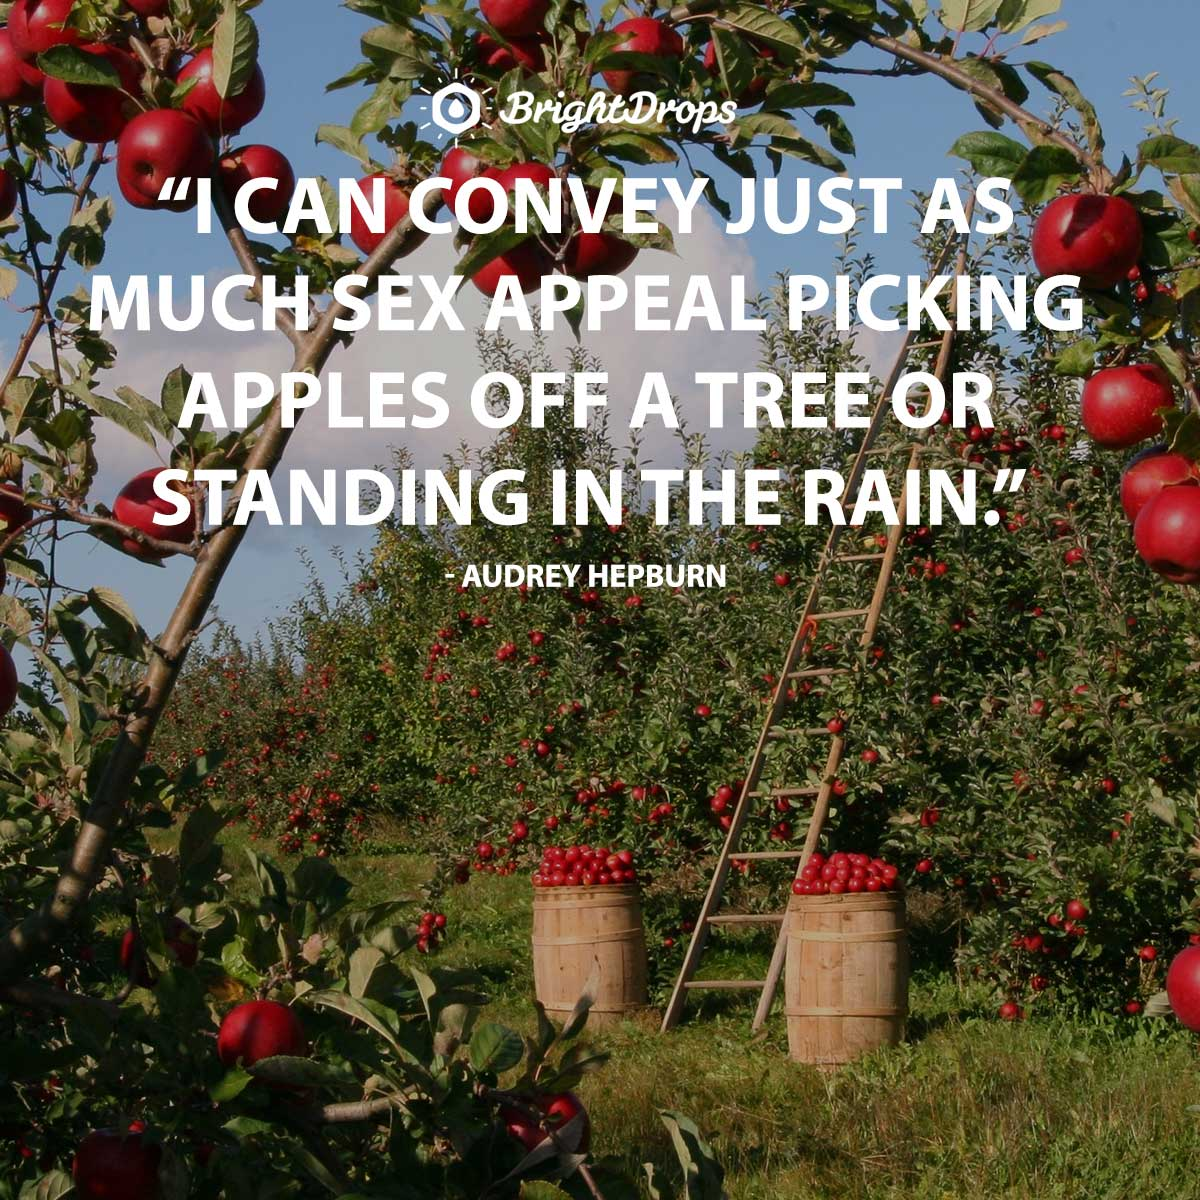 I can convey just as much sex appeal picking apples off a tree or standing in the rain. - Audrey Hepburn